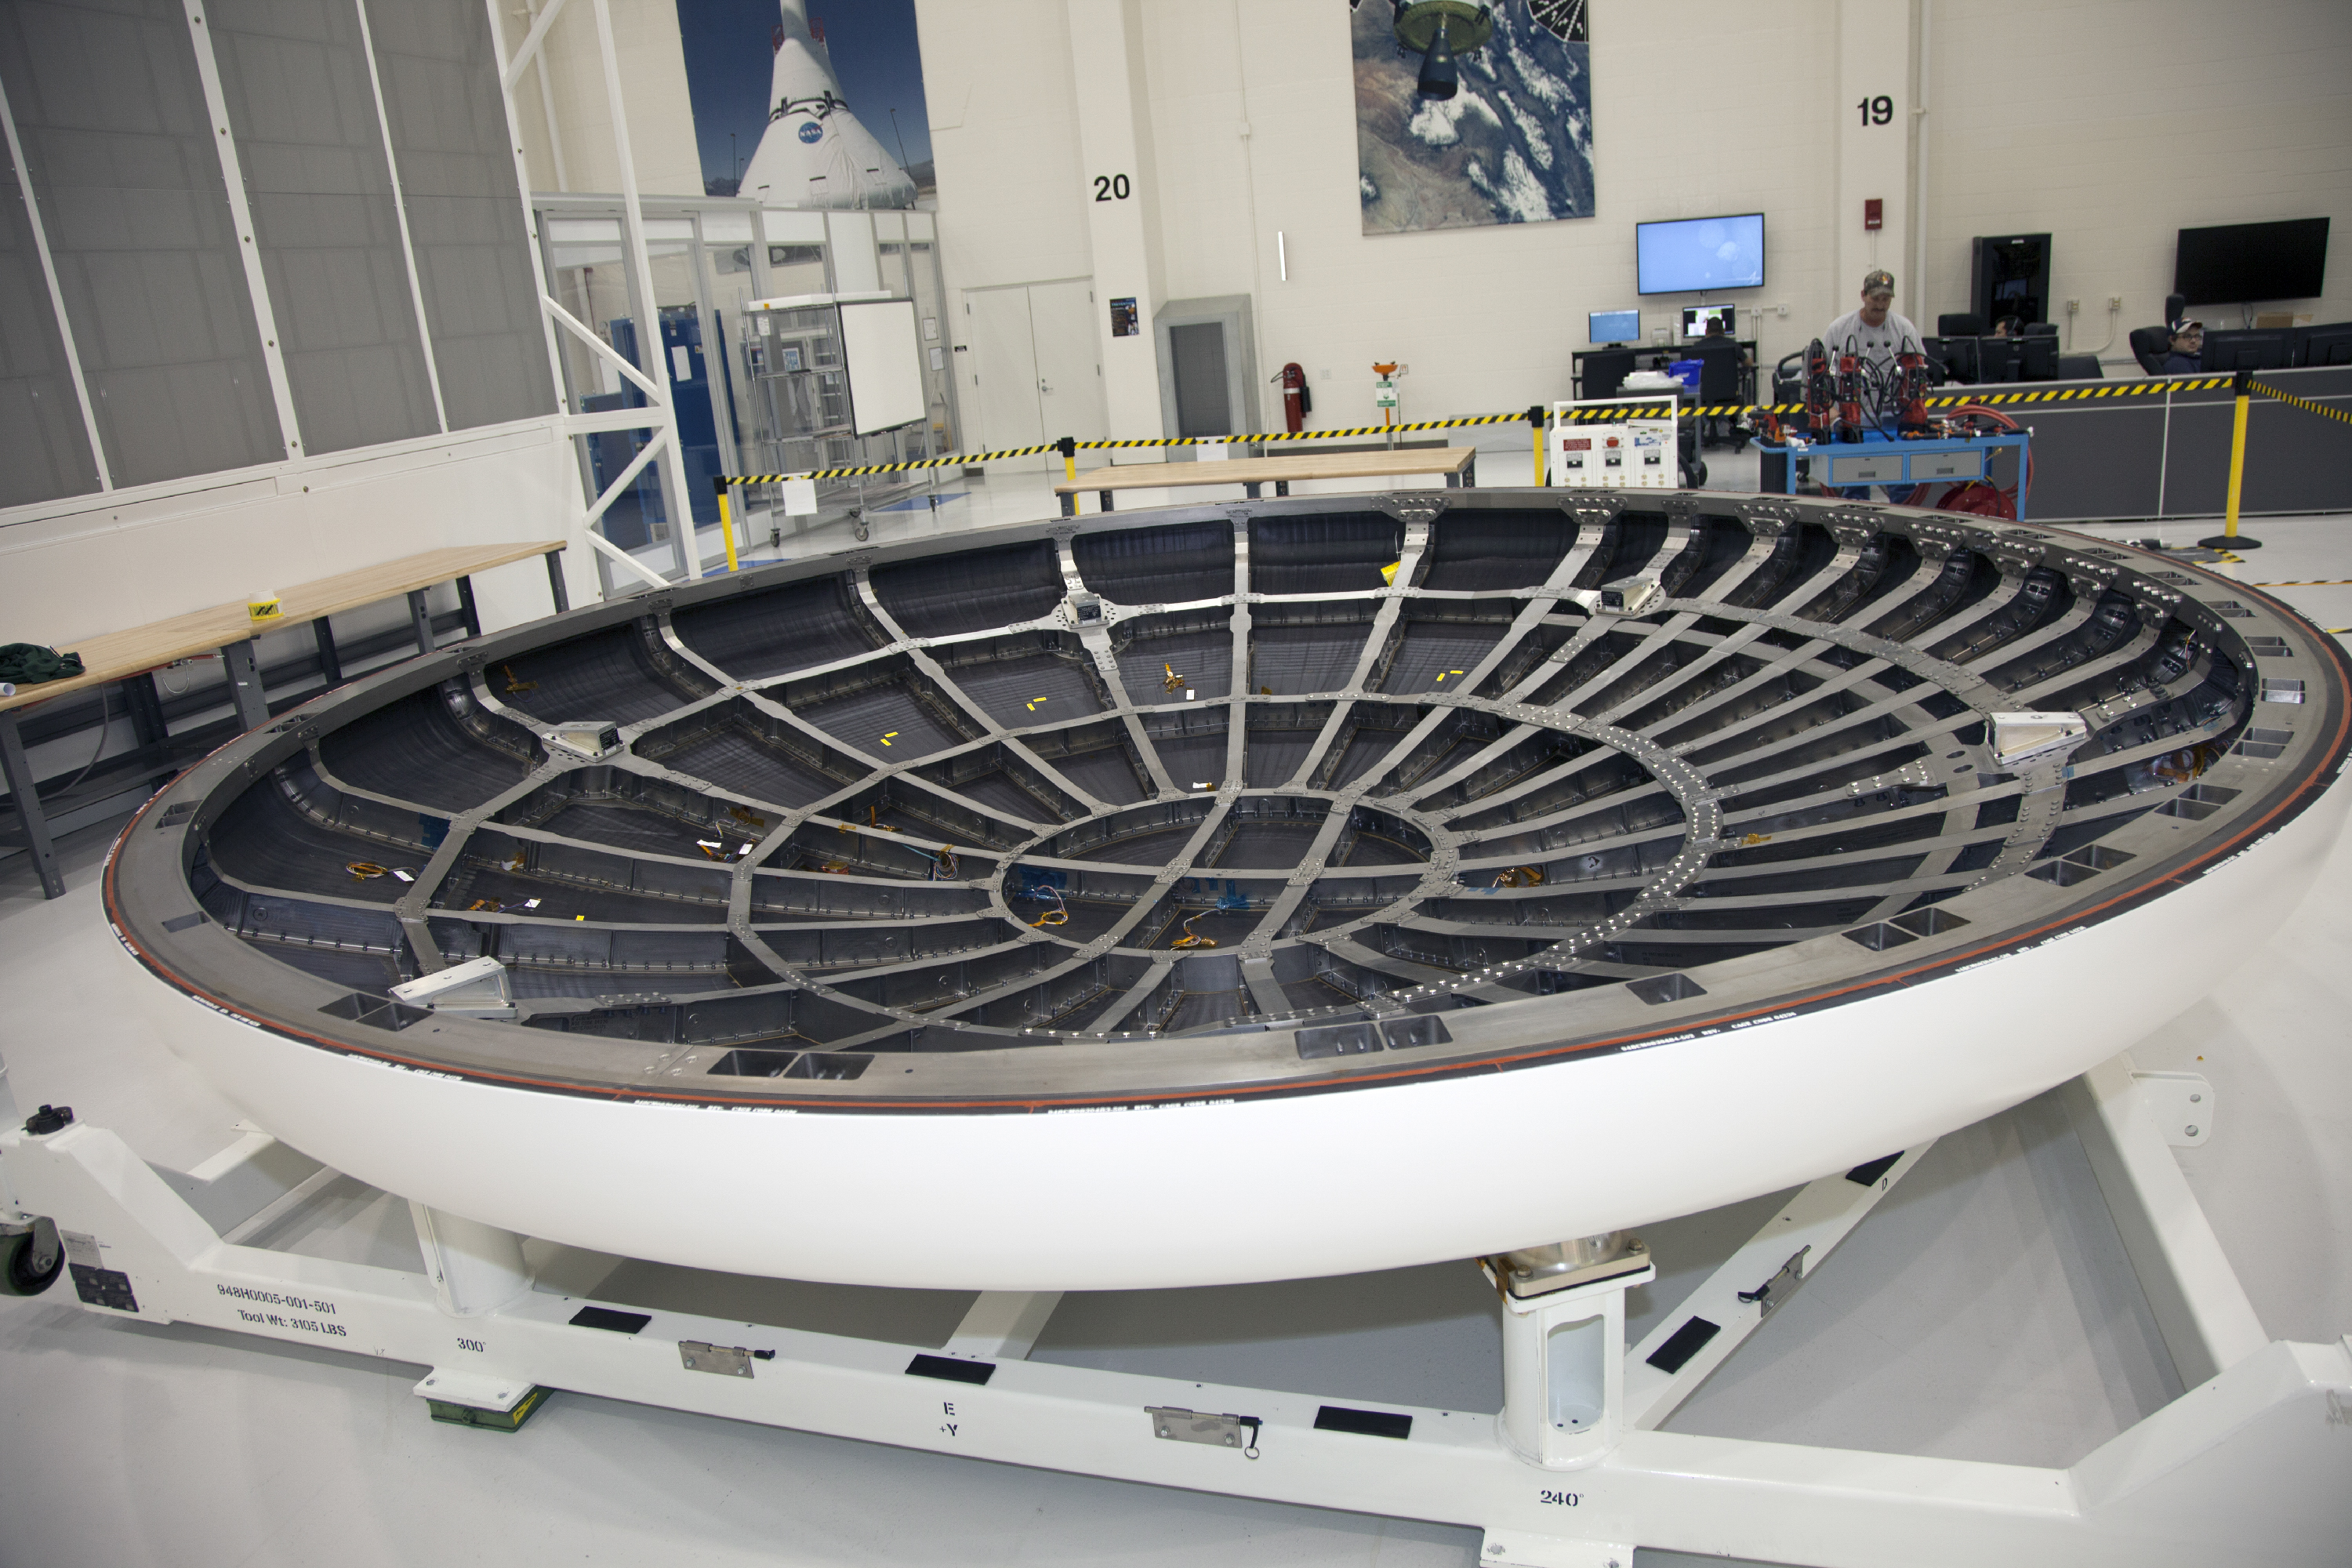 NASA's Orion Space Capsule Inches Closer to 2014 Test Flight